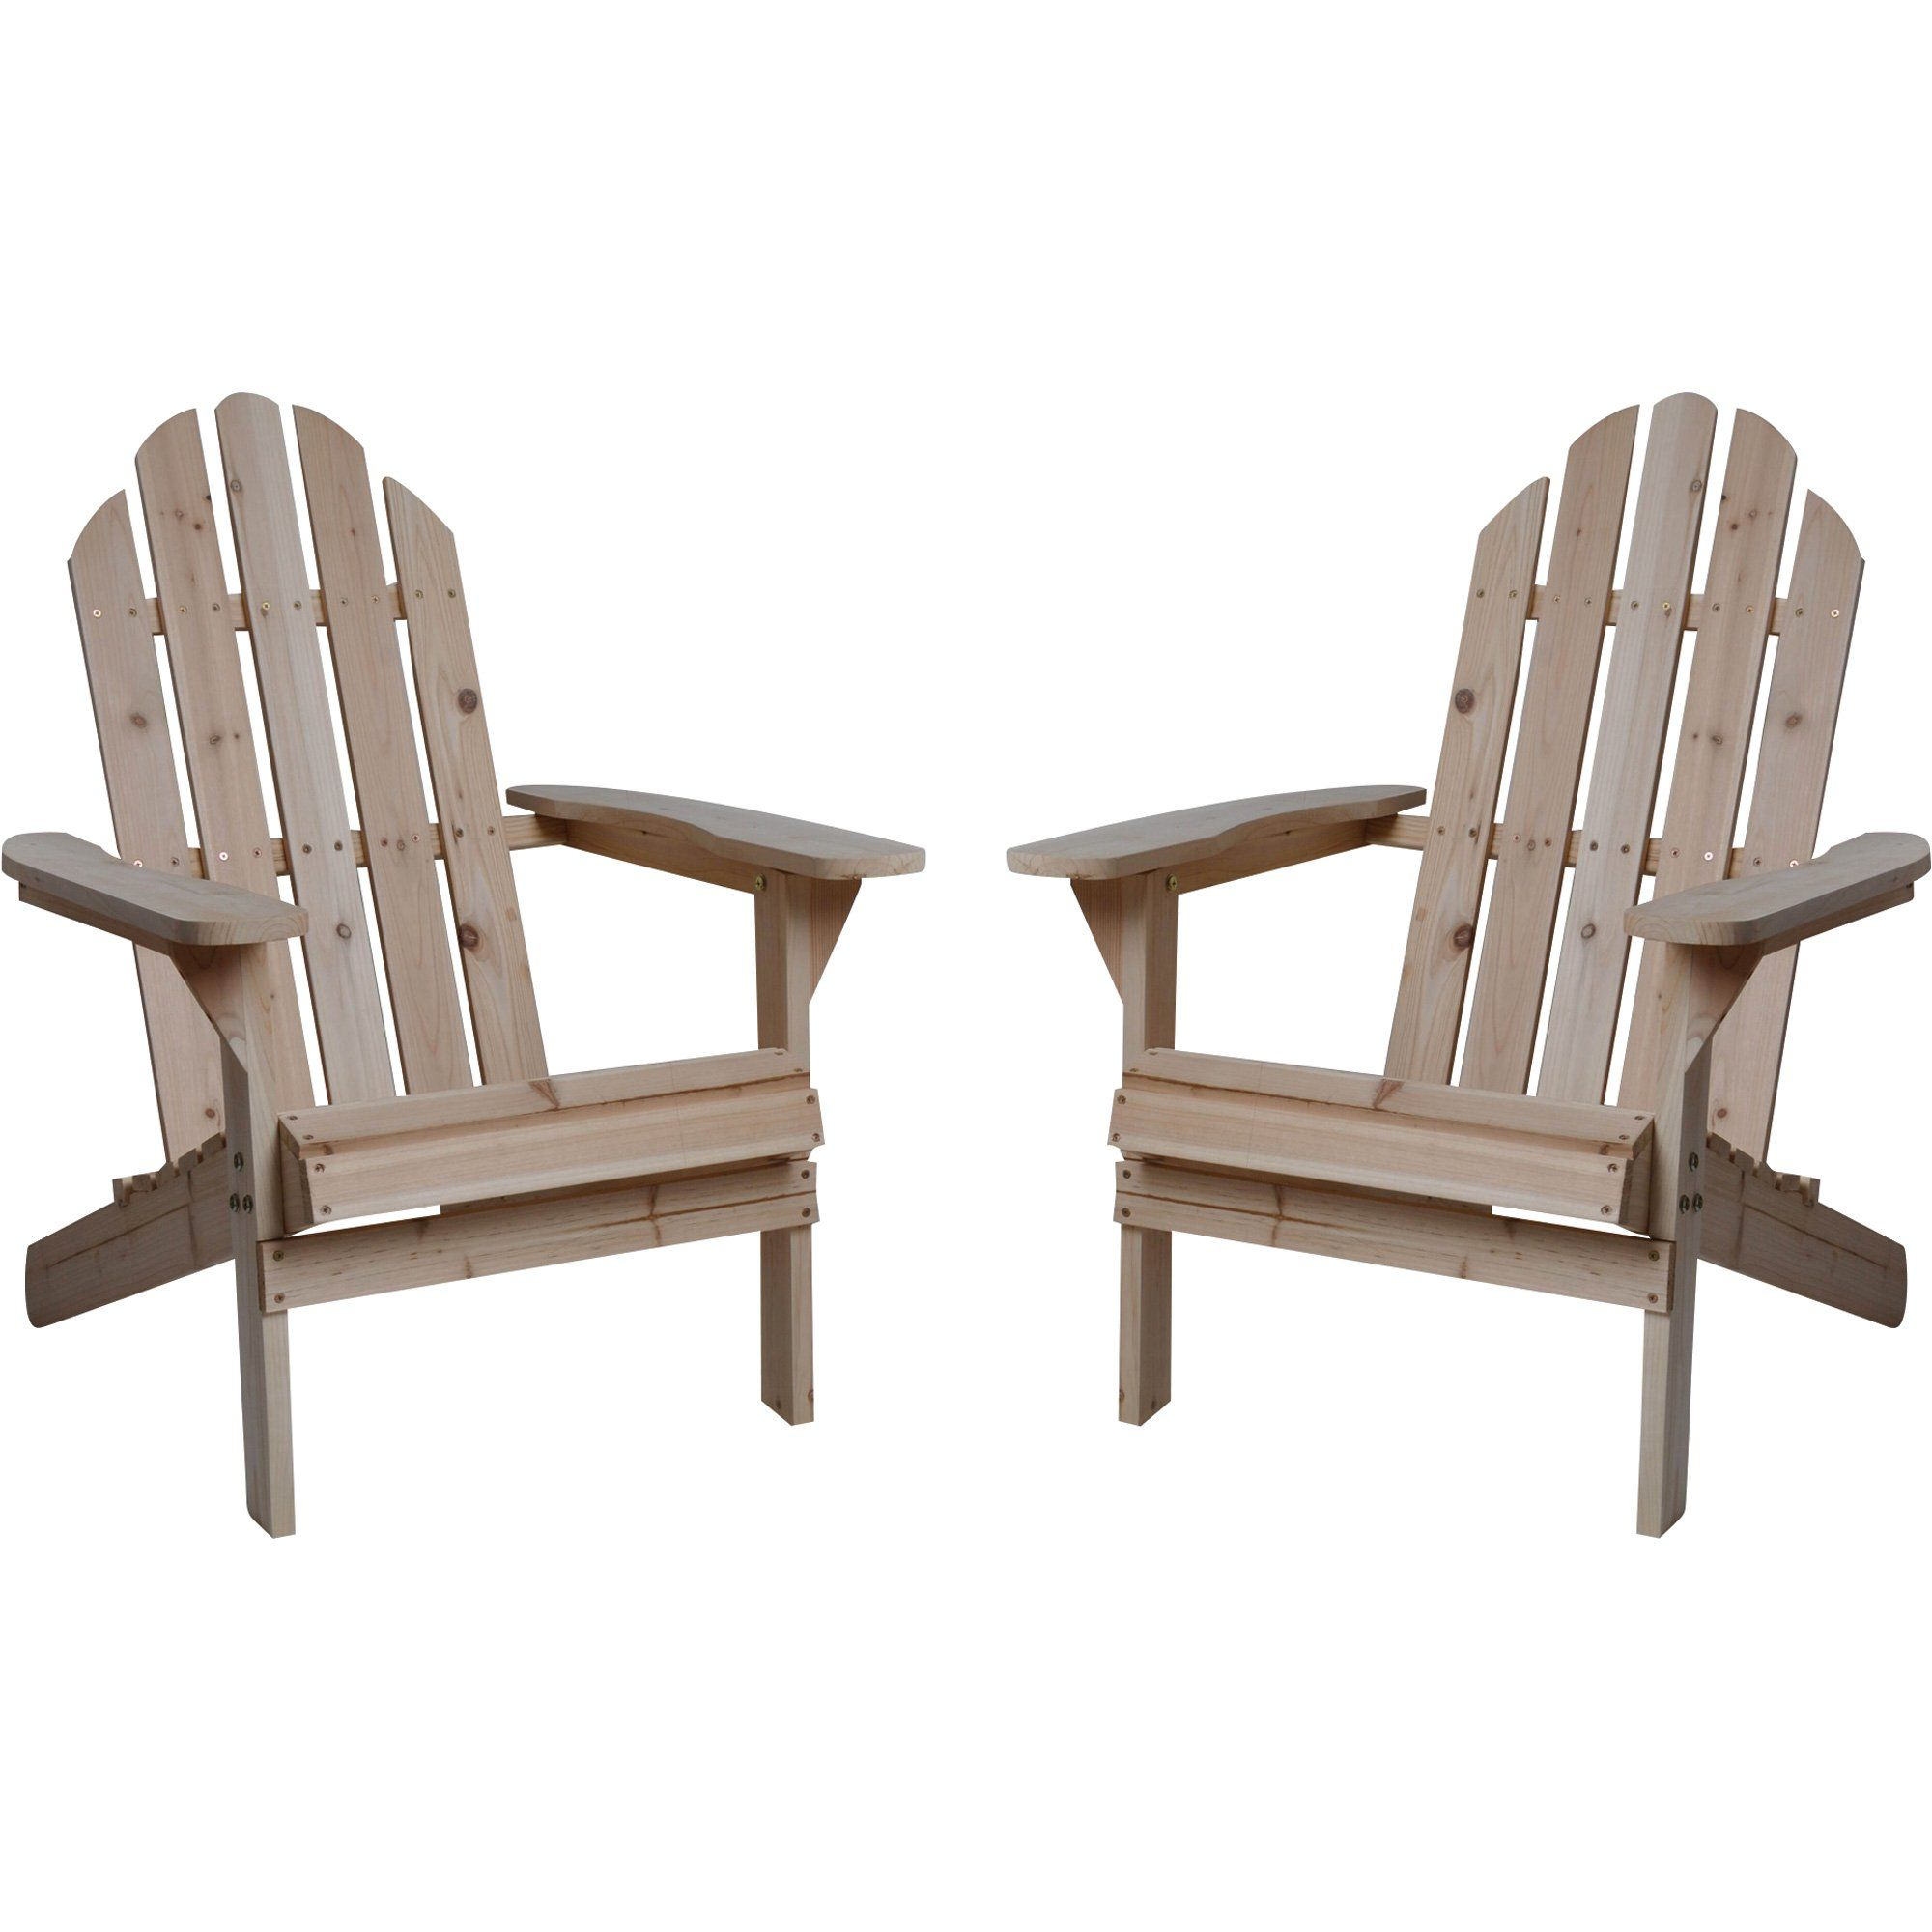 Fir Wood Unfinished Adirondack Chairs Twin Pack Wood Adirondack Chairs Adirondack Chairs Adirondack Chairs Patio